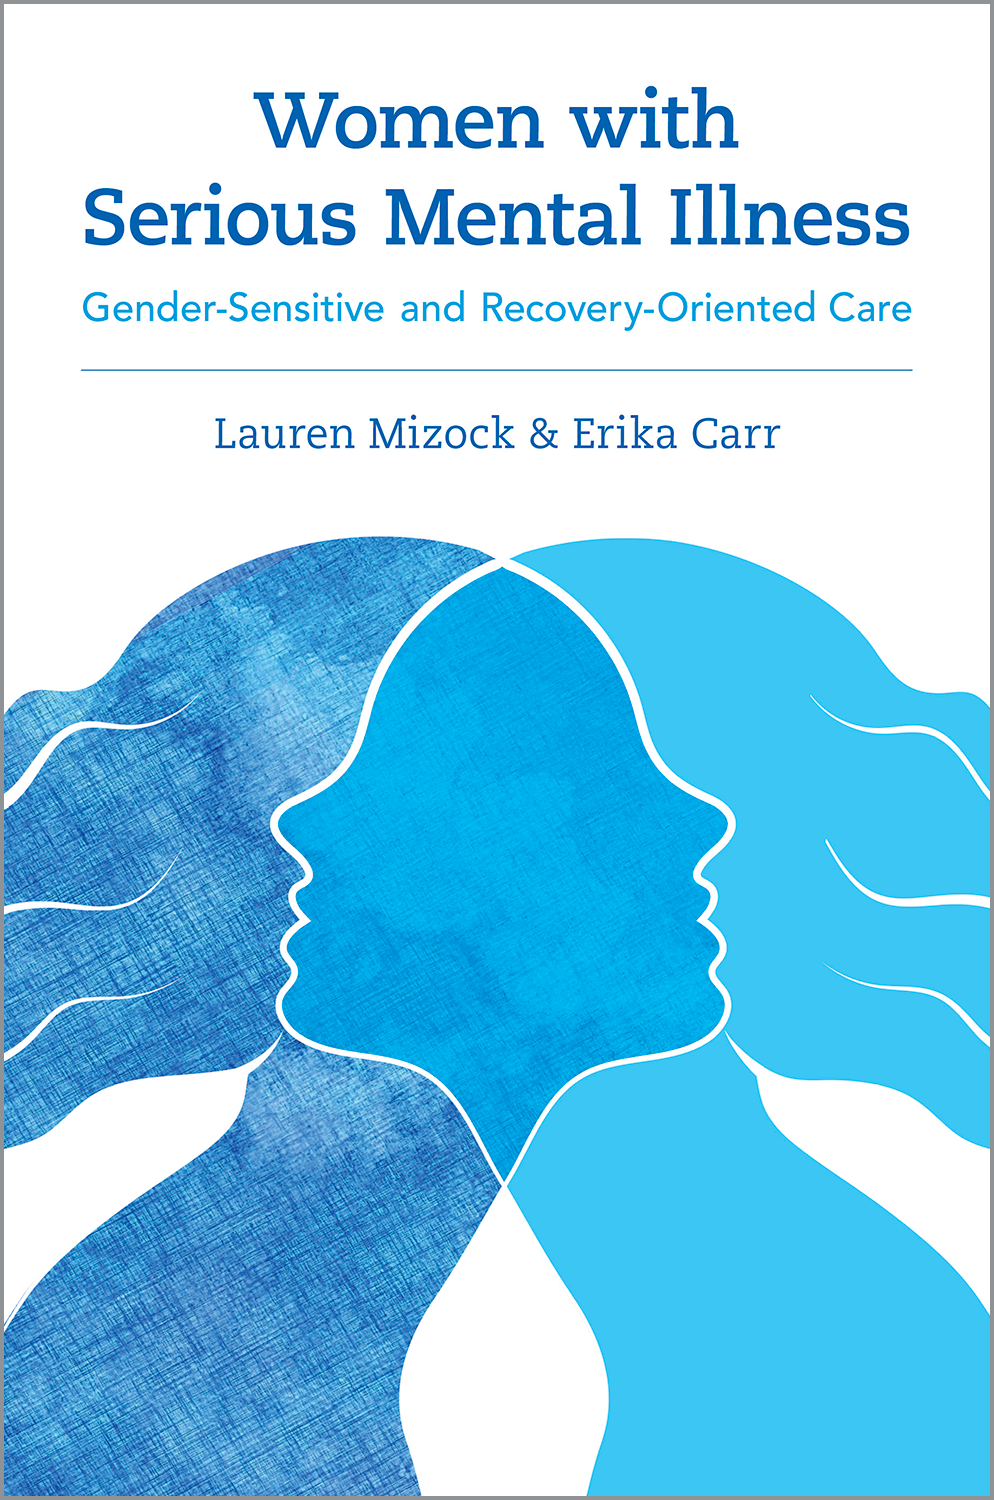 Women with Serious Mental IllnessGender-Sensitive and Recovery-Oriented Care$